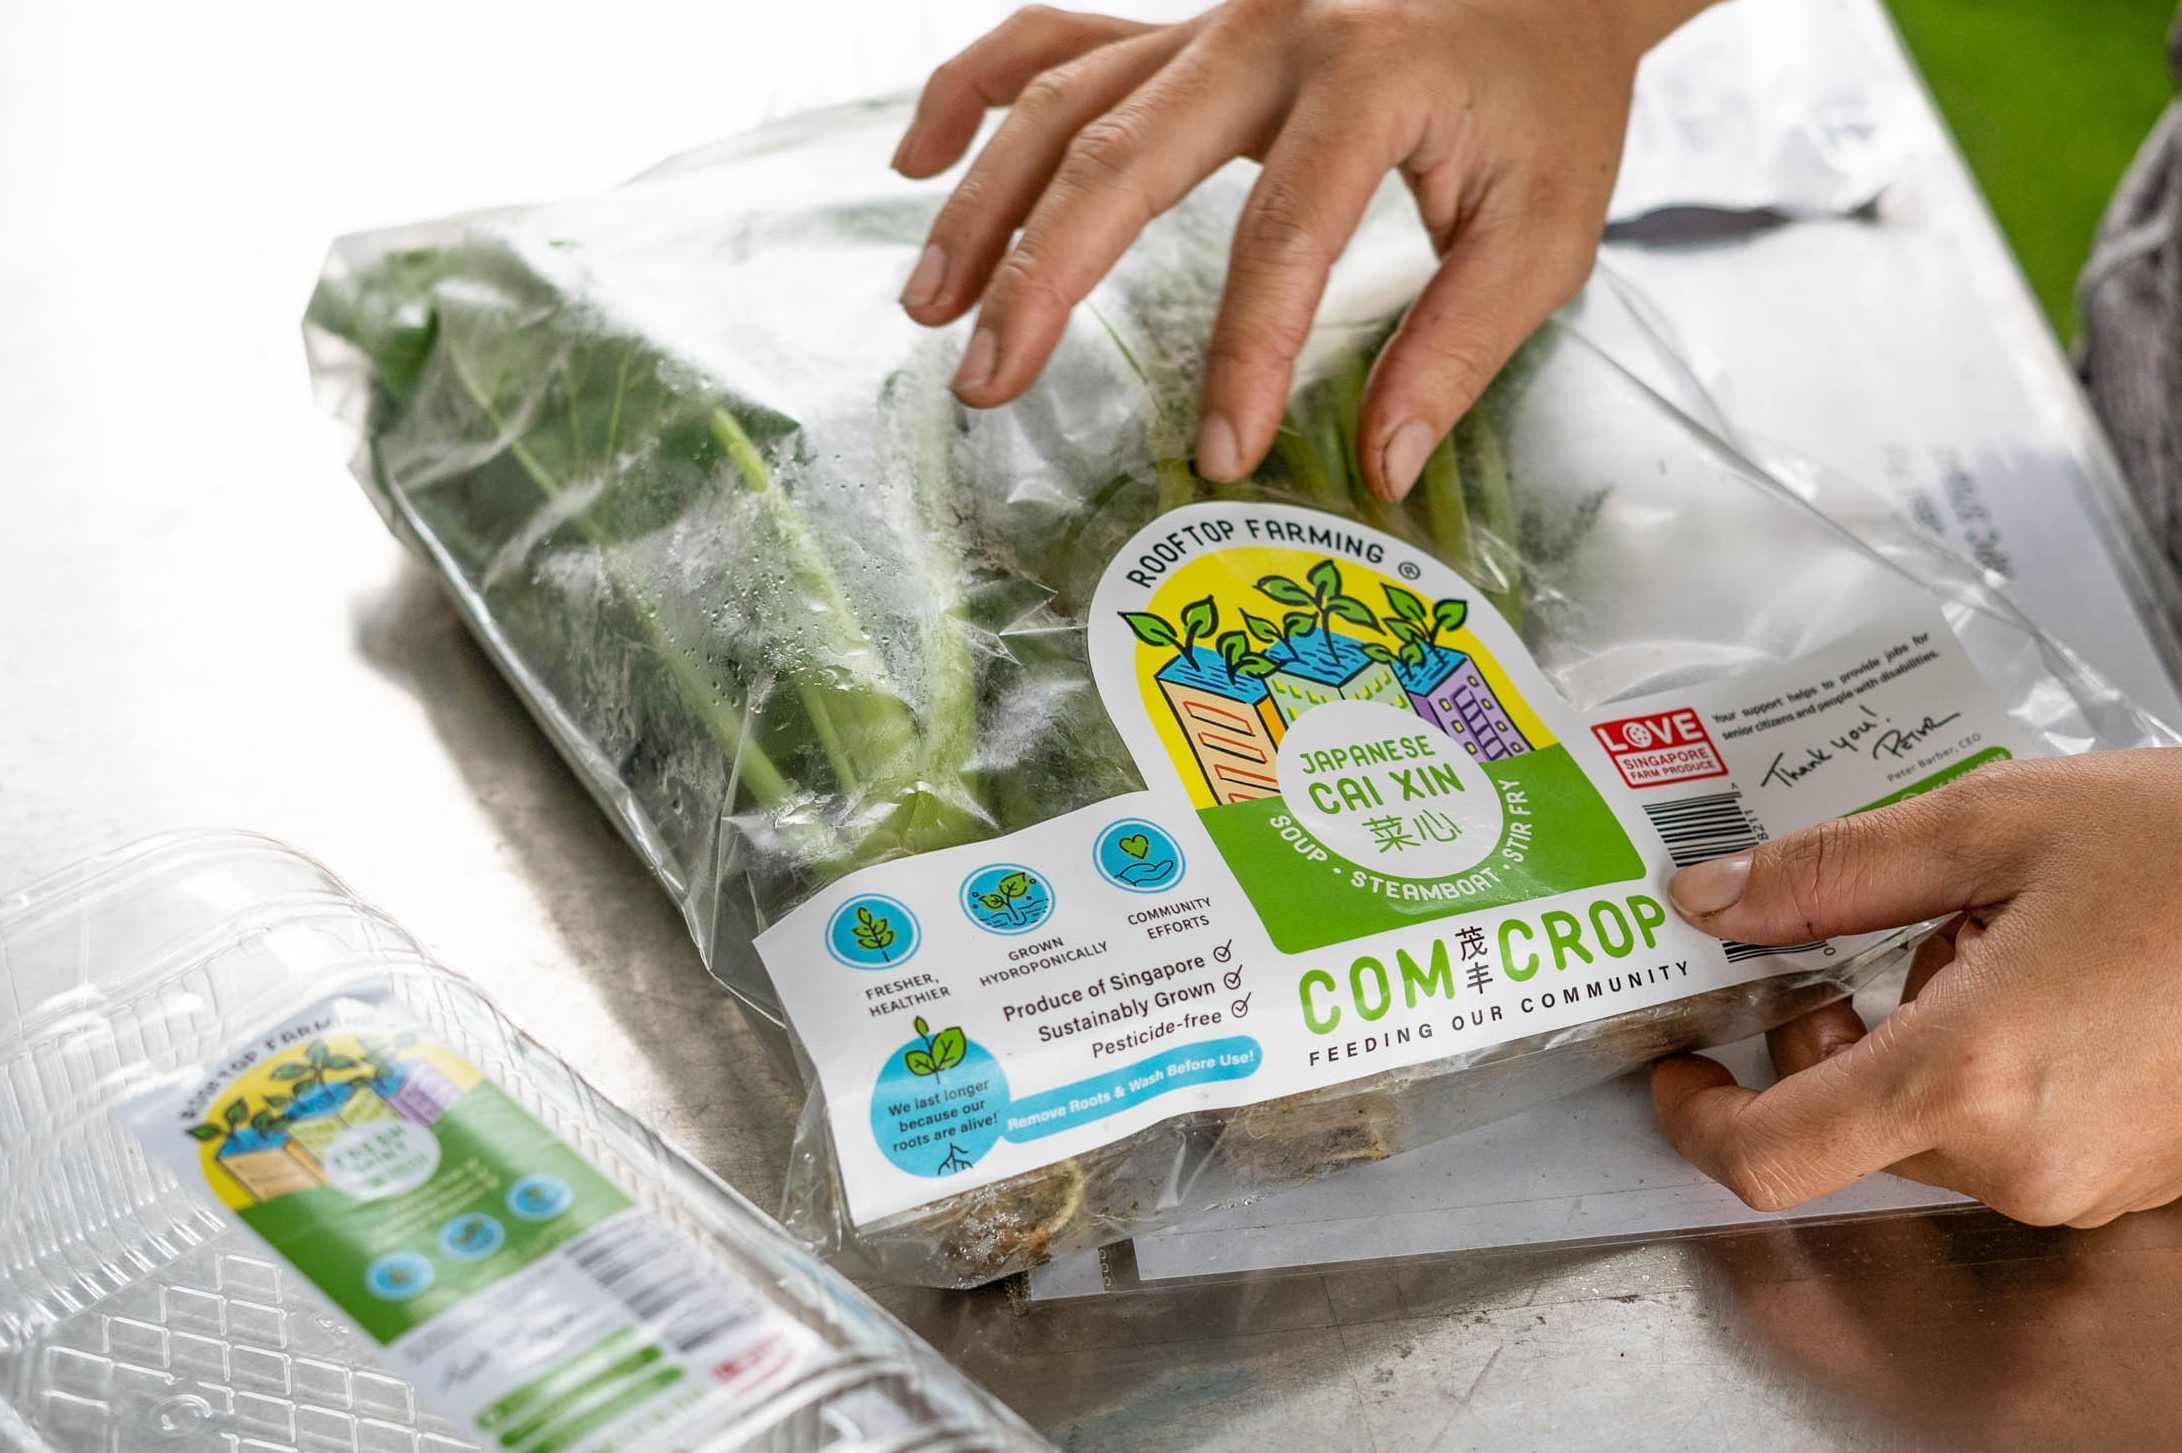 comcrop worker packaging greens